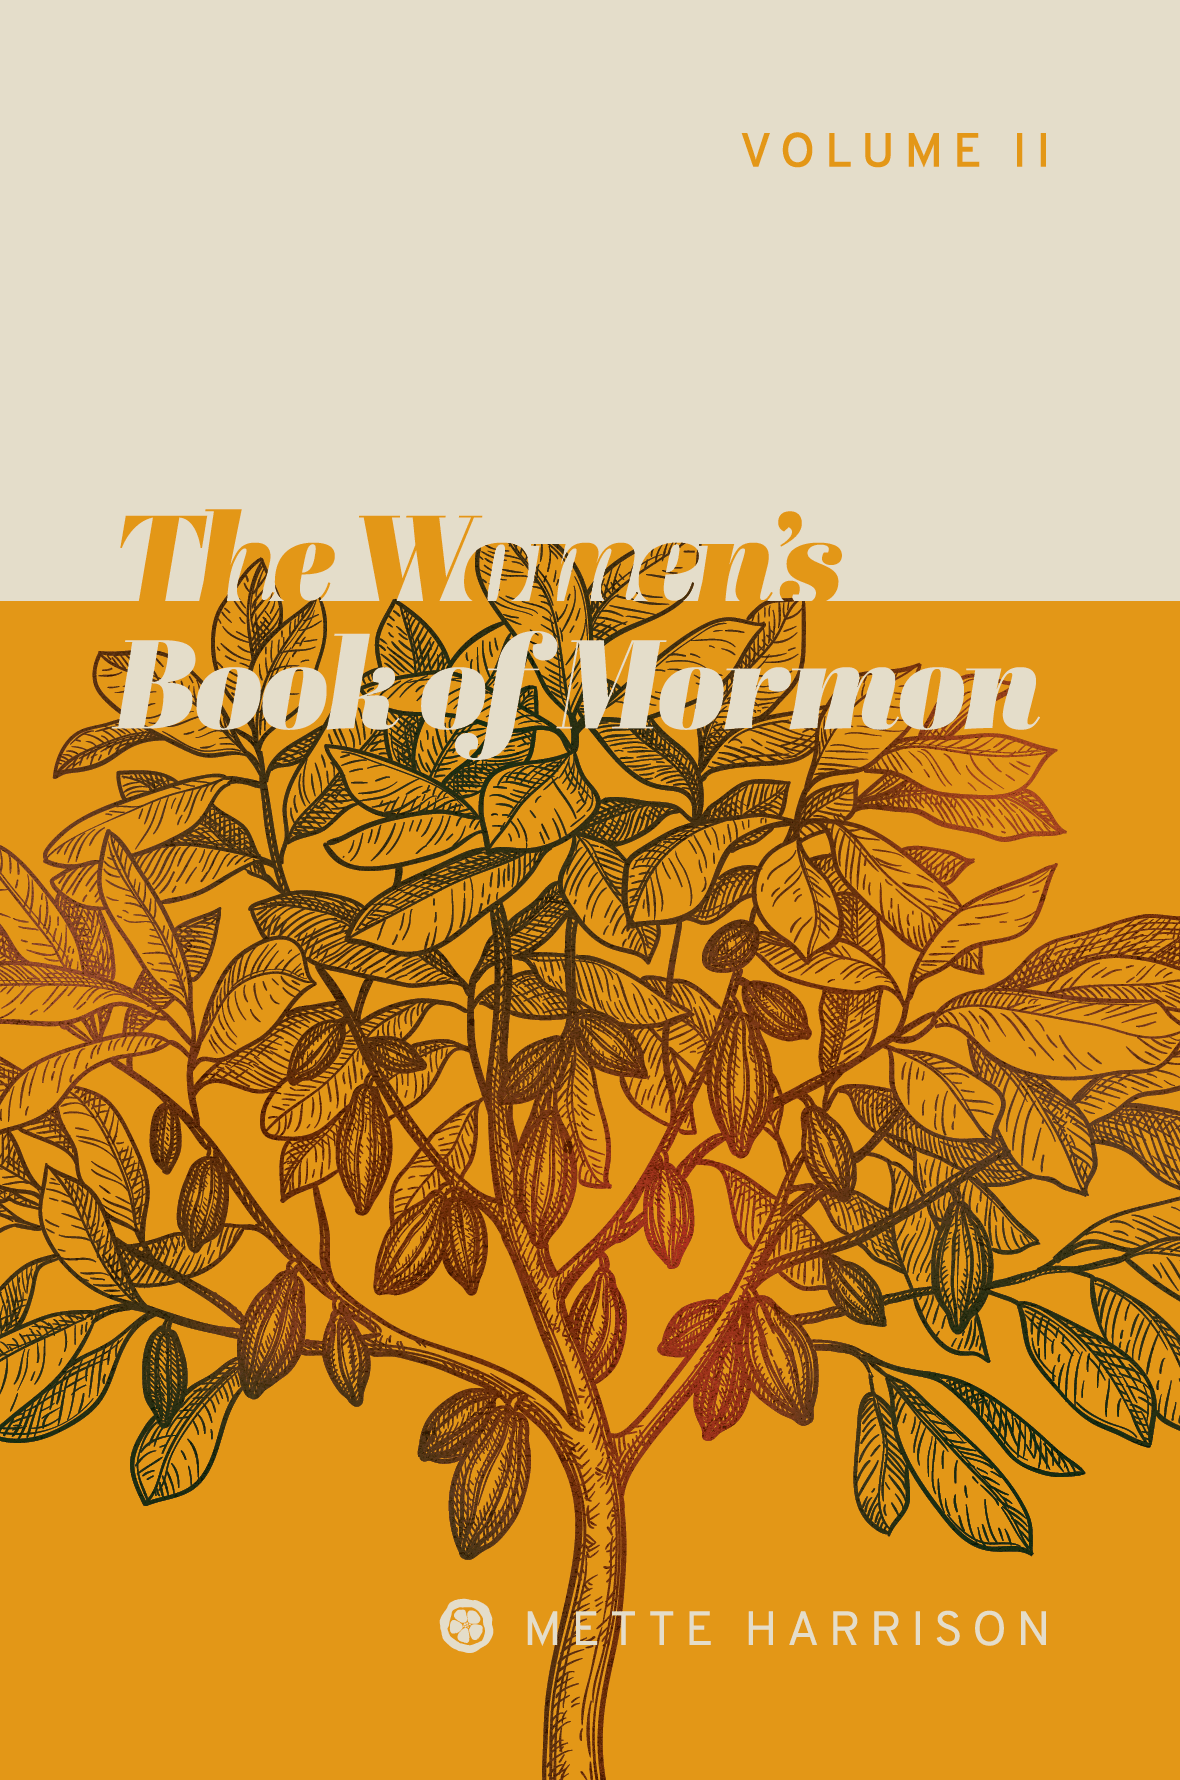 The Women's Book of Mormon (Vol. 2 coming in late 2020)